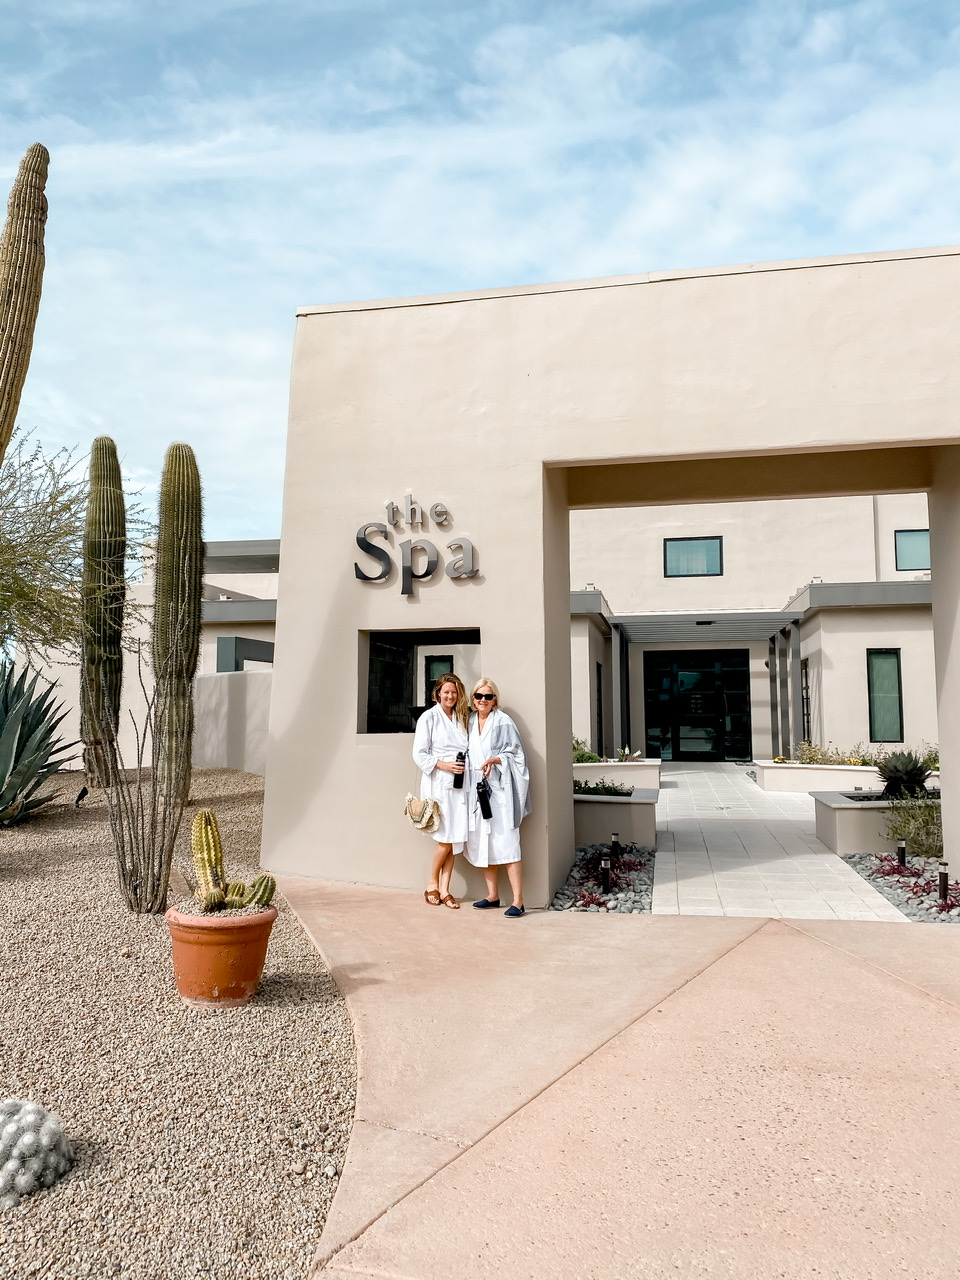 Standing outside the welcoming oasis that is the Civana Spa before enjoying our signature facial and prenatal massages.